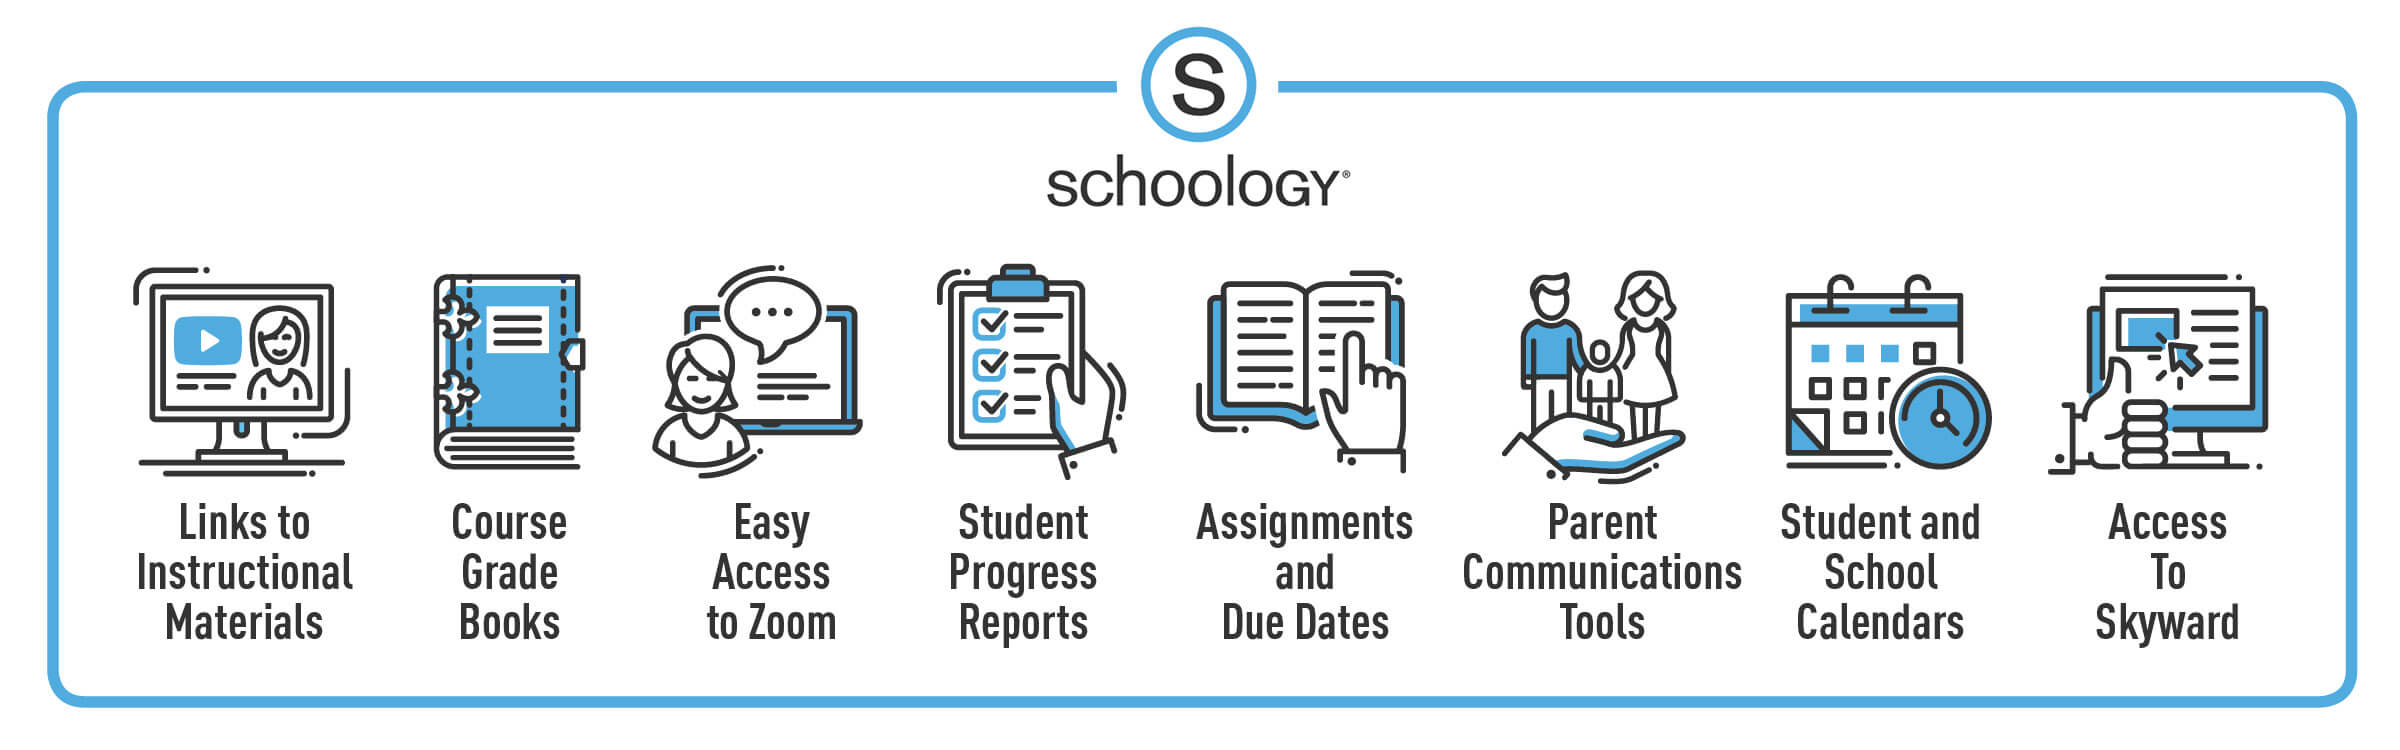 Schoology Page Banner